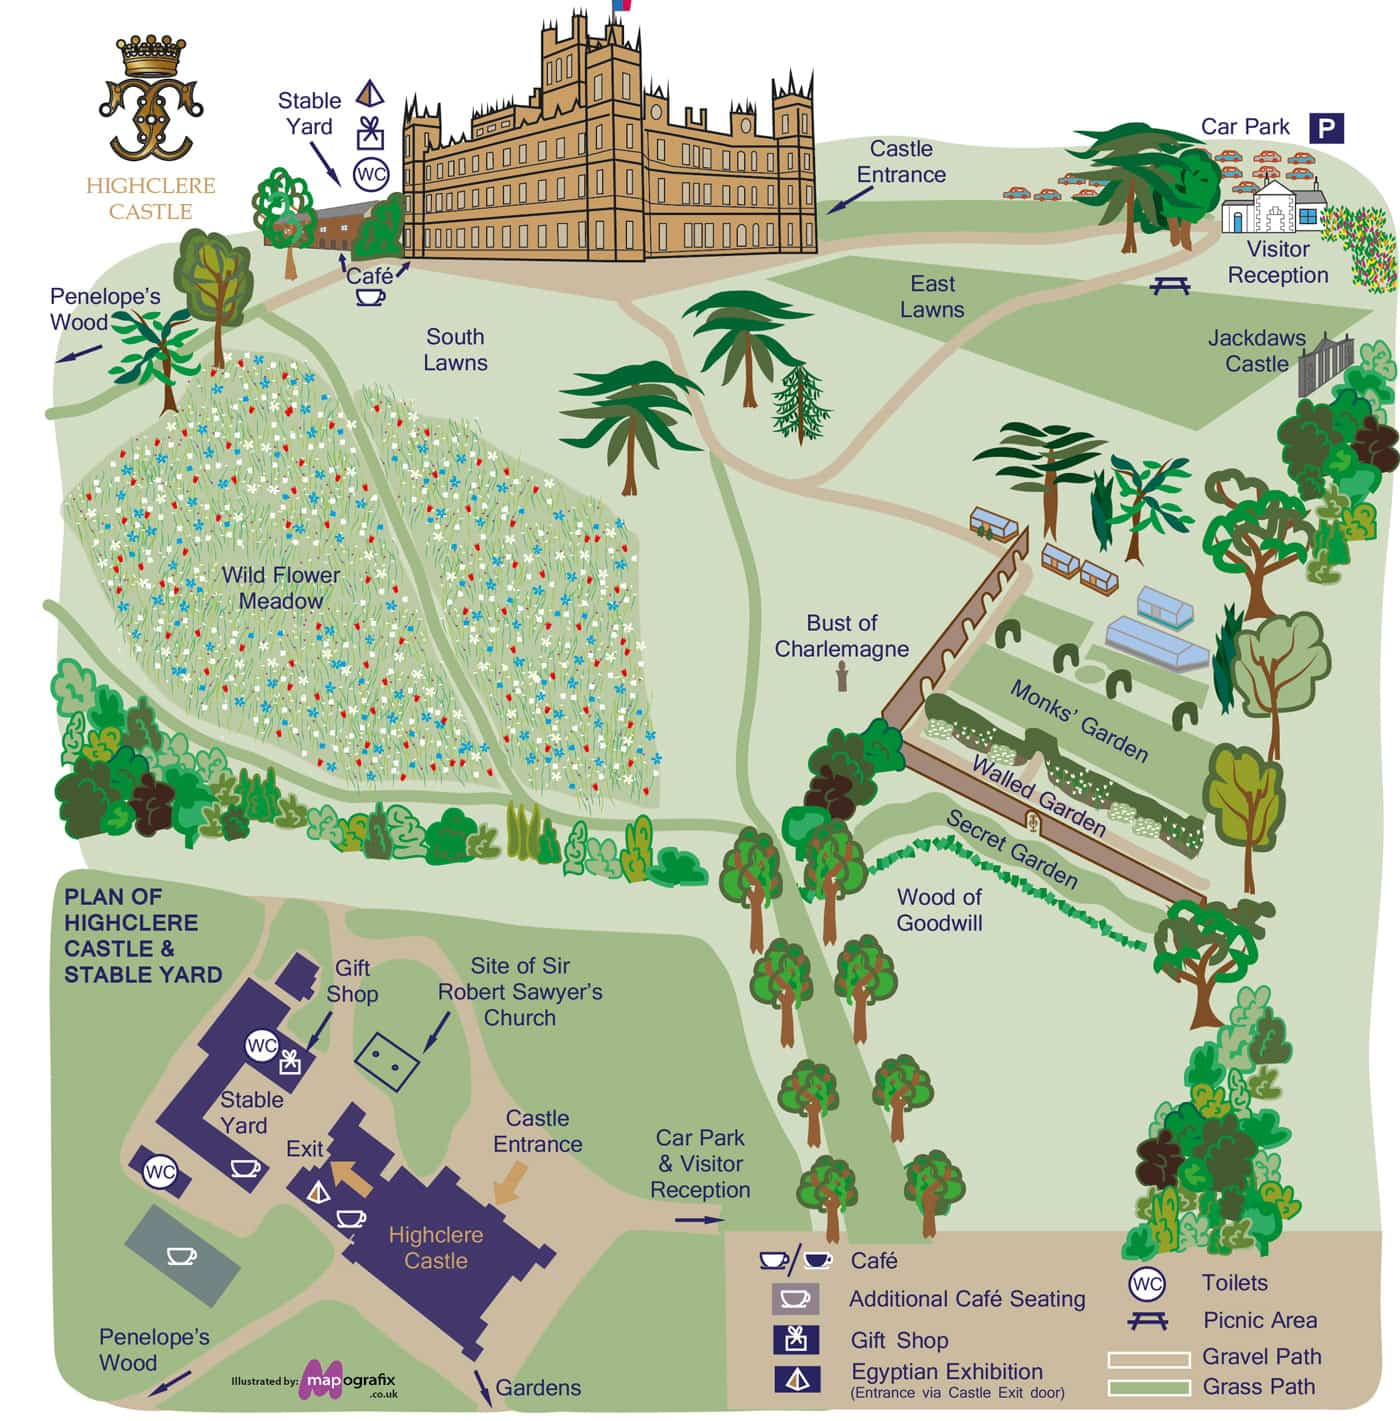 Tips for Visiting Downton Abbey filming site Highclere Castle